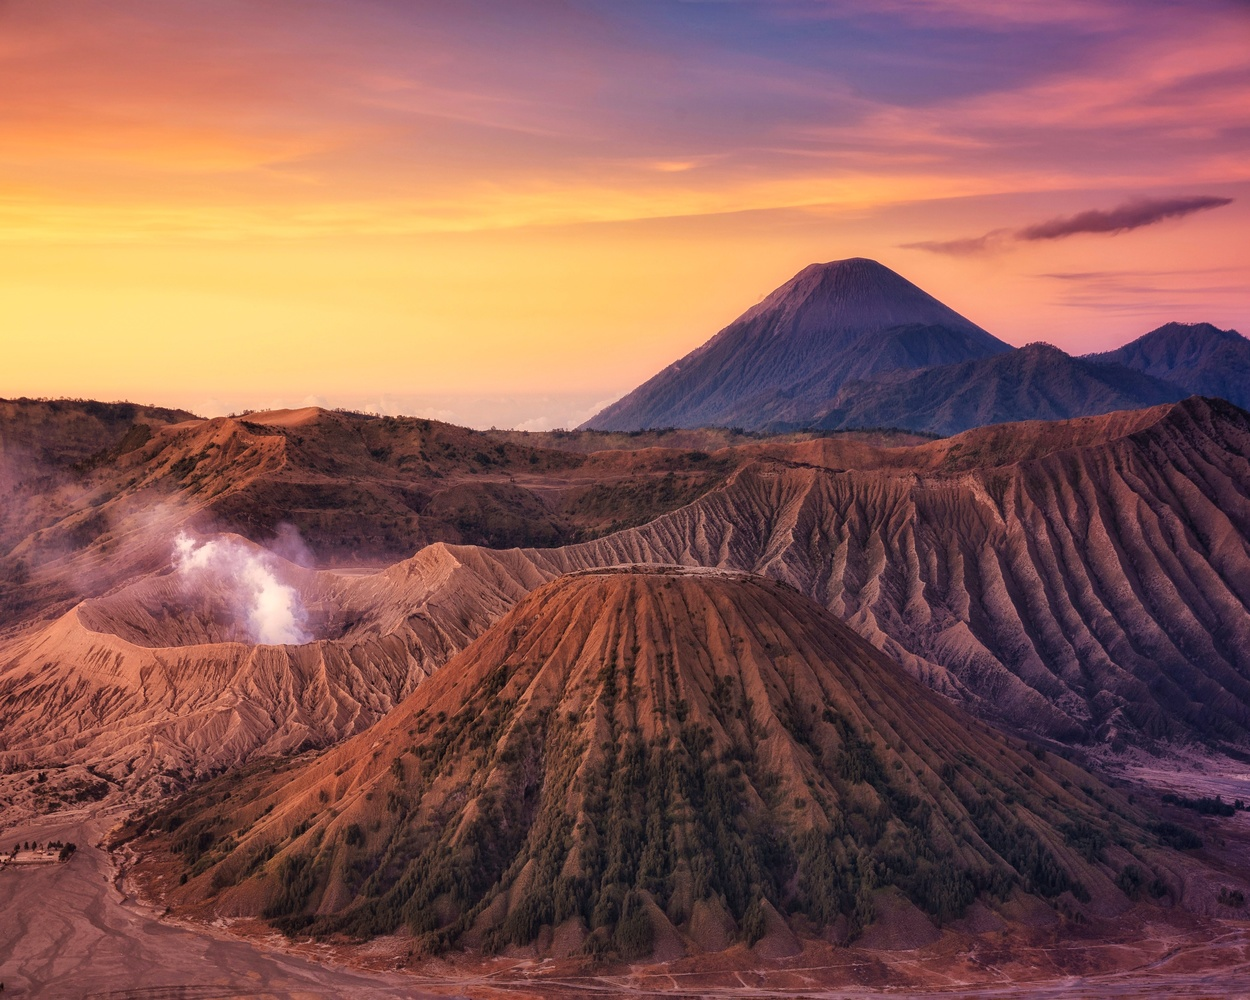 Sunrise colors in Bromo by Efren Yanes